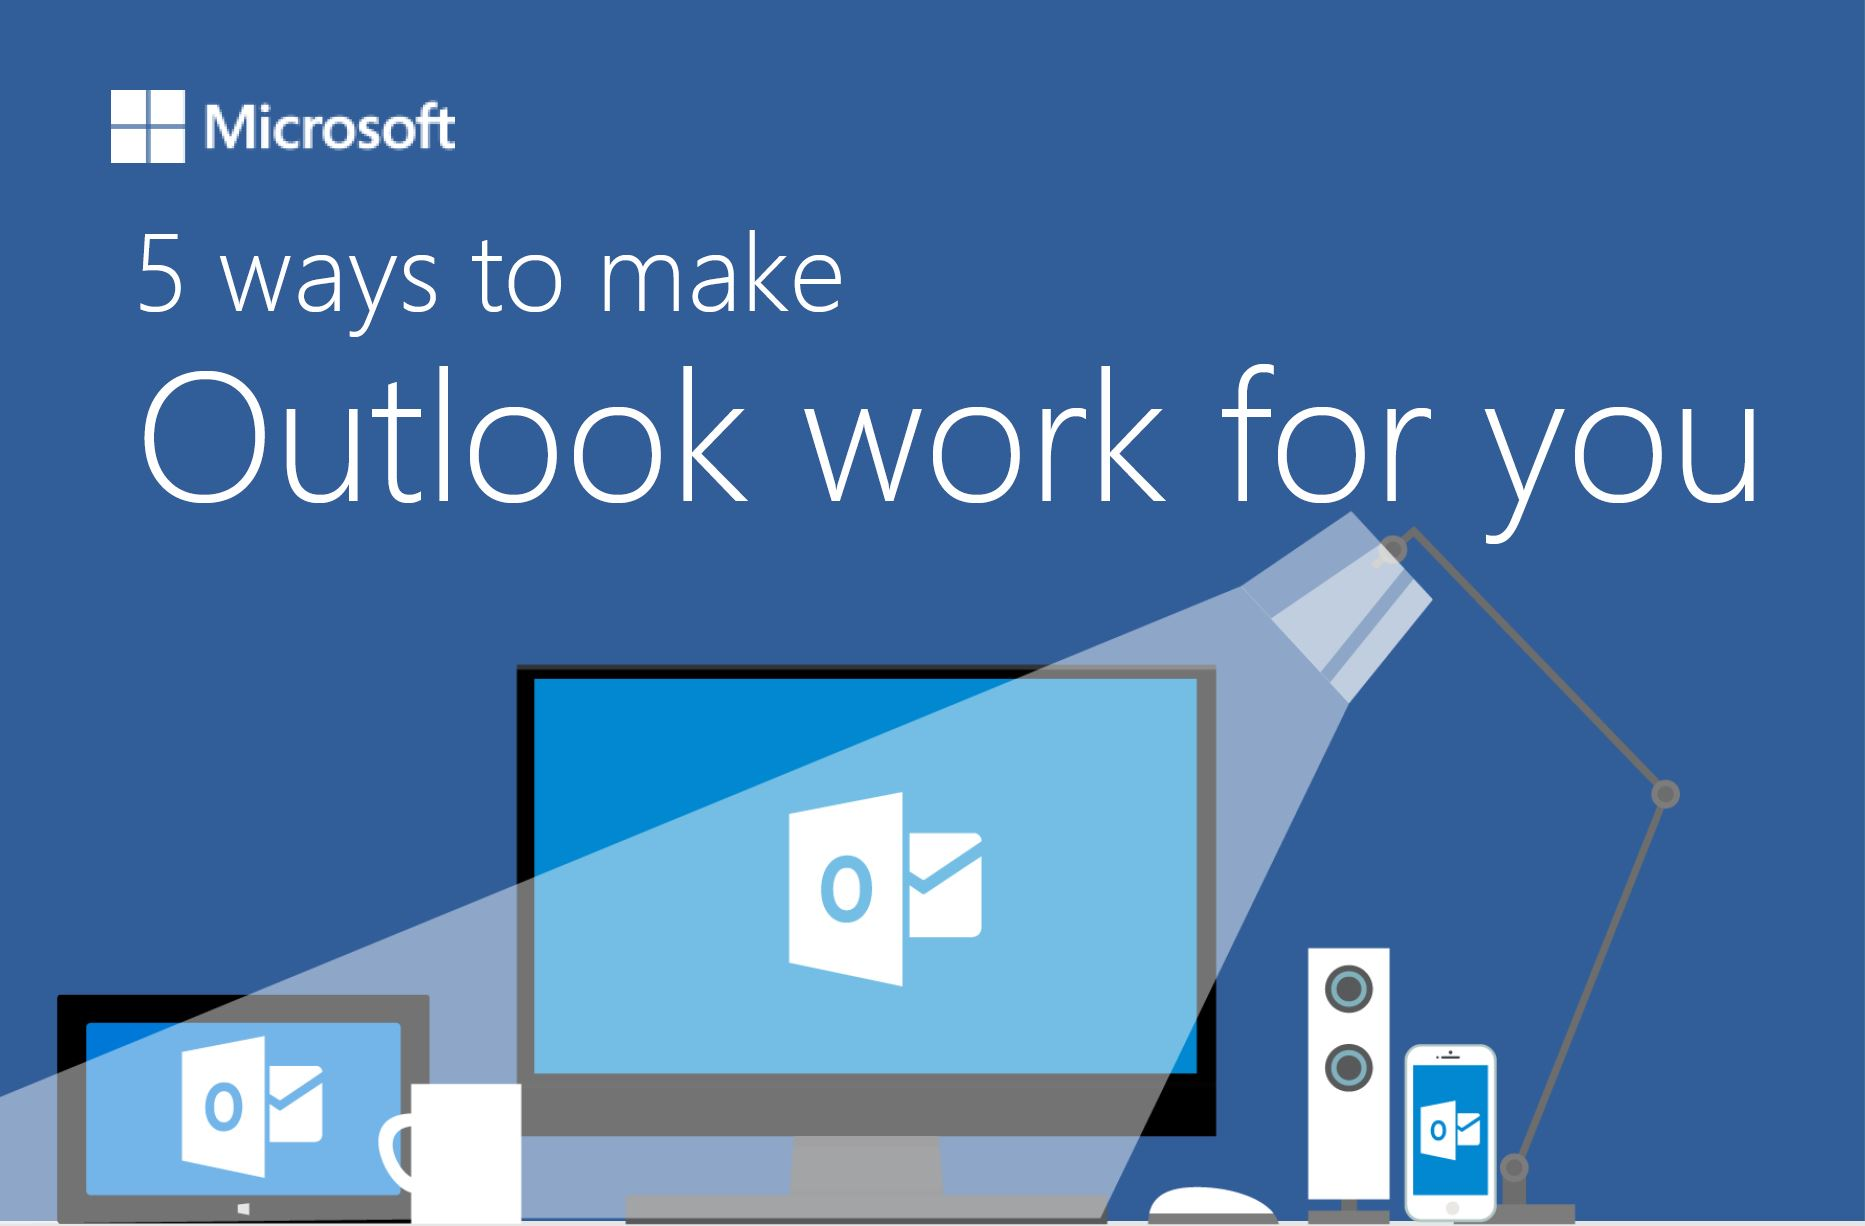 Microsoft-Outlook-Infographic-to-increase-productivity